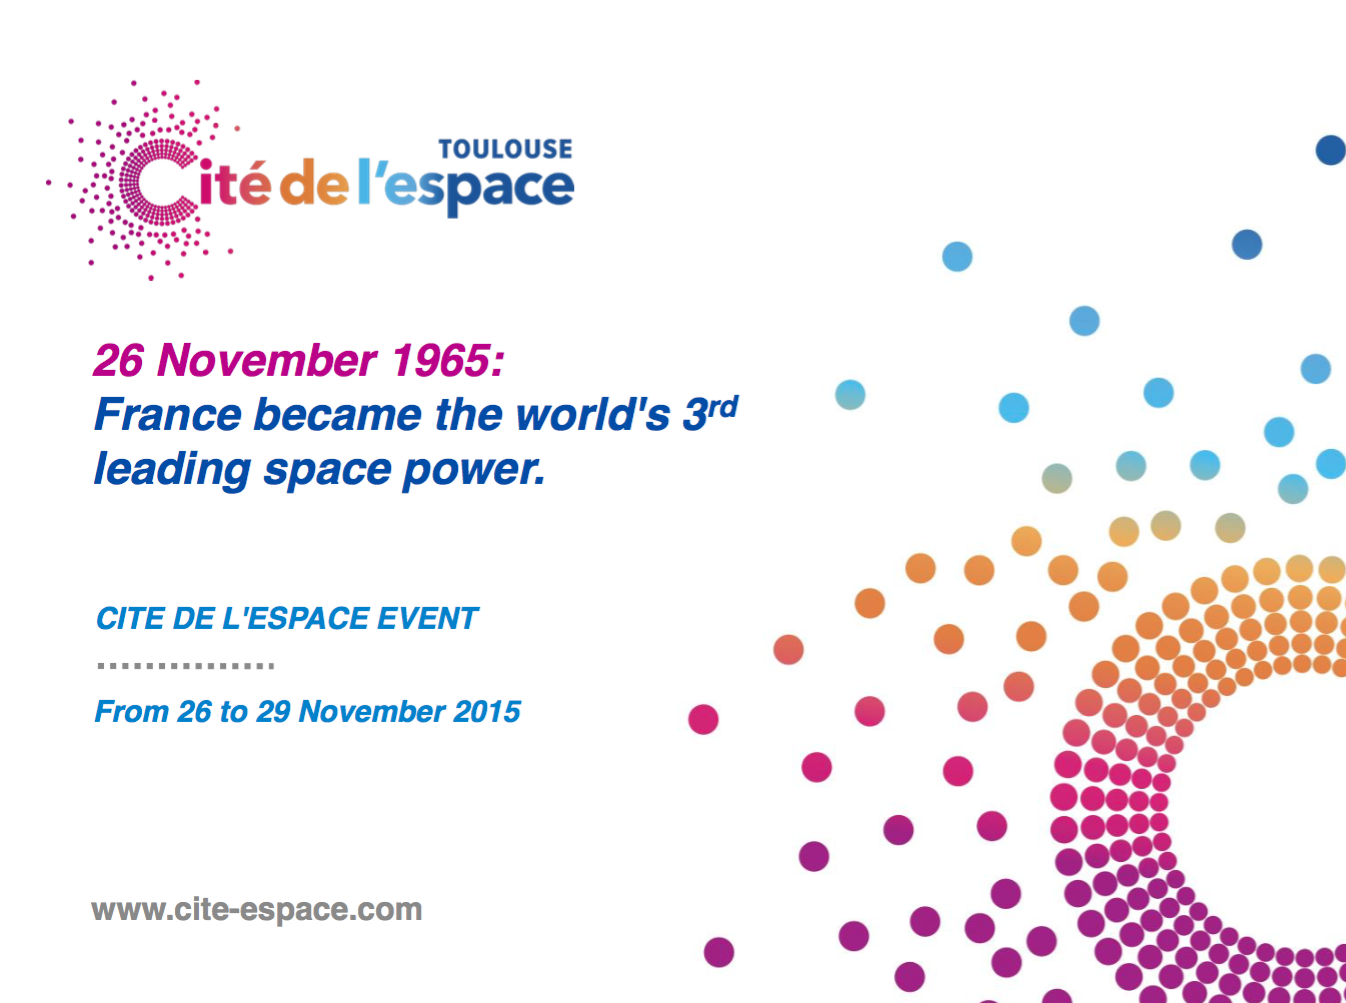 Above: An event at Toulouse France Cité de l'espace, November 26-29, 2015. November 26, 1965: France became the world's 3rd leading space power! It was 50 years ago! (Click to zoom.)